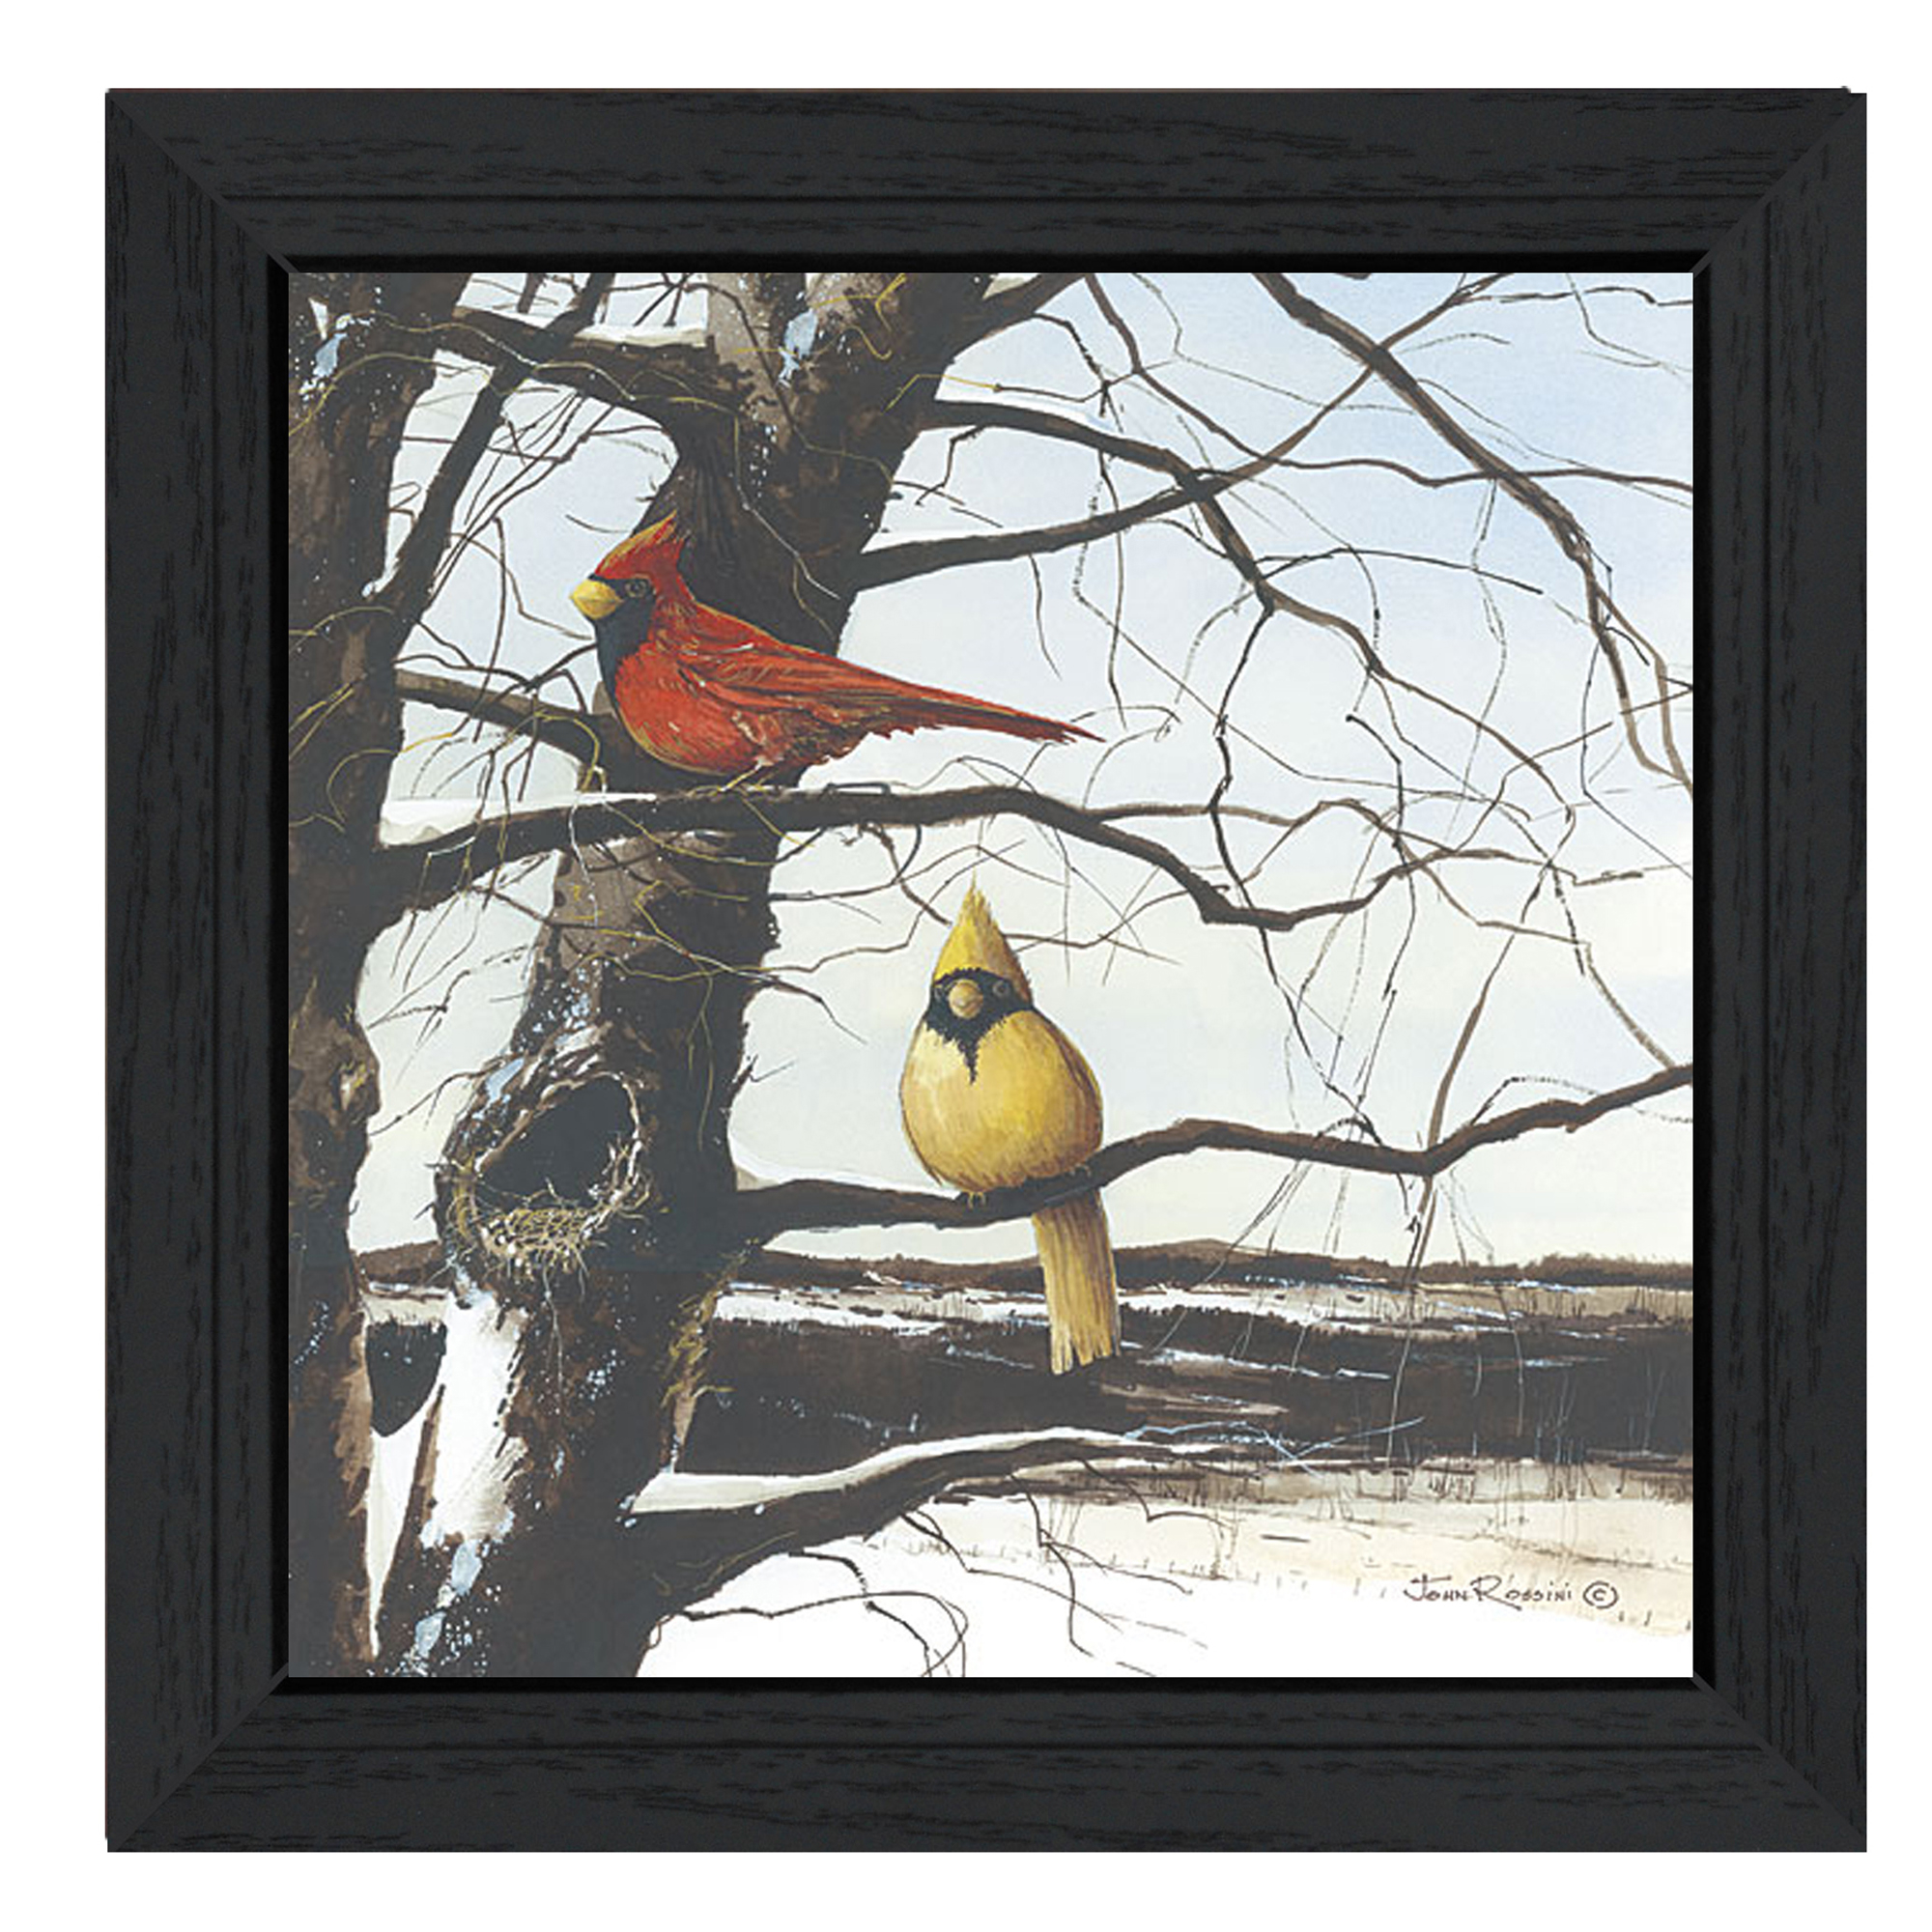 "Jr197-405 ""A View from Above"" is a 15""x15"" black framed print. This artwork features two birds sitting on tree branches. This totally American Made wall decor item features an attractive frame, a textured canvas like finish so no glass is necessary and is ready to hang. * Made in the USA * Women Owned (Wbe) * Textured Artwork with a 'rolled on' acid free acrylic coating to create a canvas painting effect. No glass is necessary. * UV protectant coating protects artwork from fading. * MDF moulding adds natural beauty to the framed art. Frame is keyholed for ease of hanging."